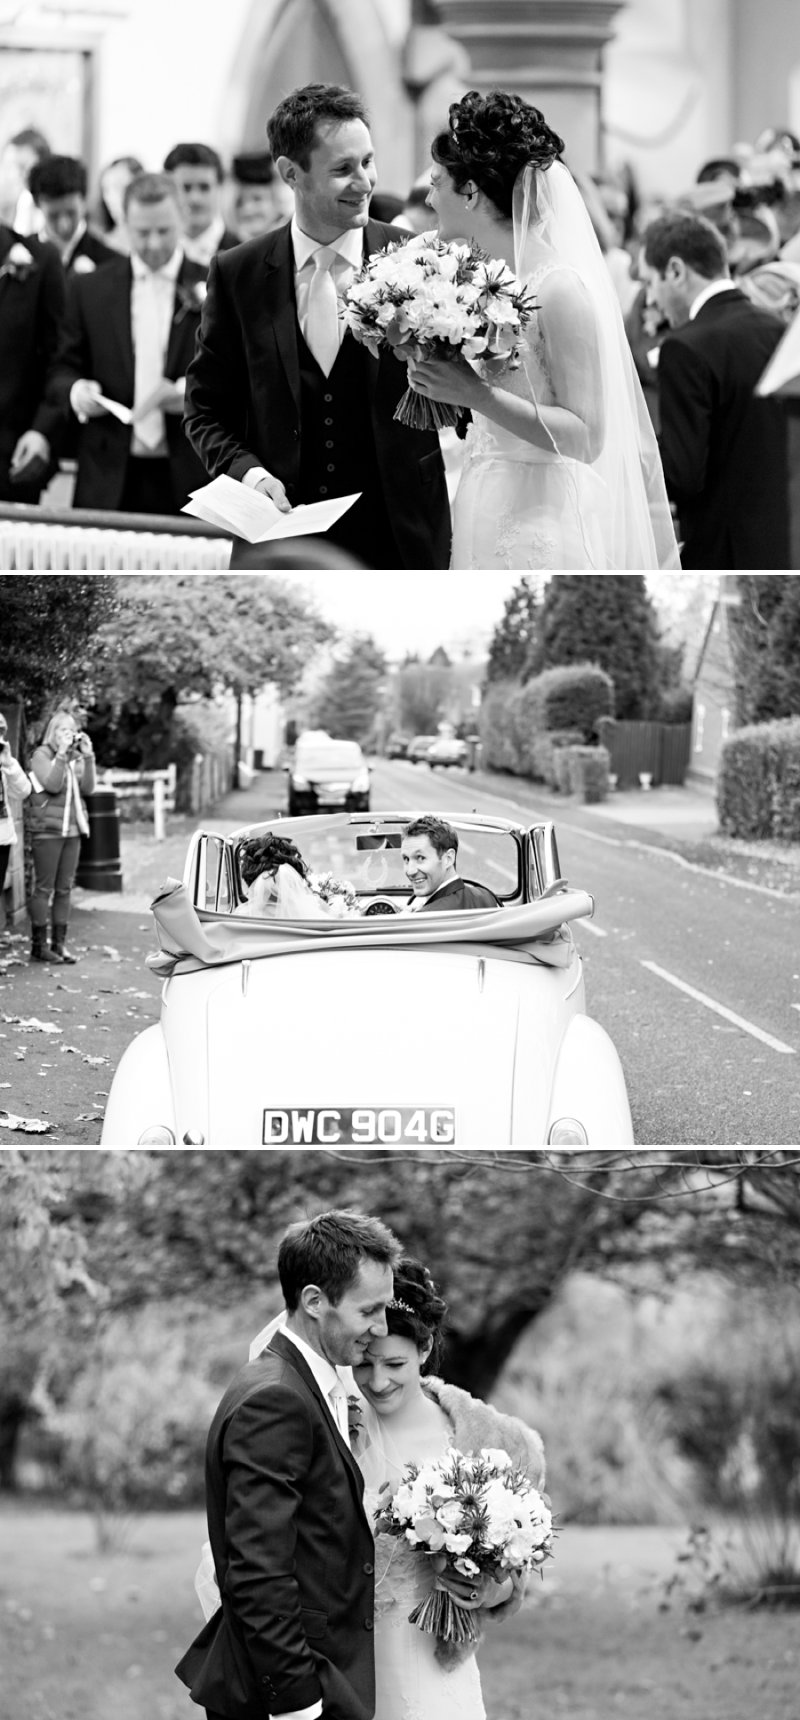 Elegant Vintage Inspired Wedding At Shottle Hall In Derbyshire With Bride In Essense Of Australia Gown With Miu Miu Shoes And Groom In Ted Baker Suit With A Vintage Jaguar Car 5